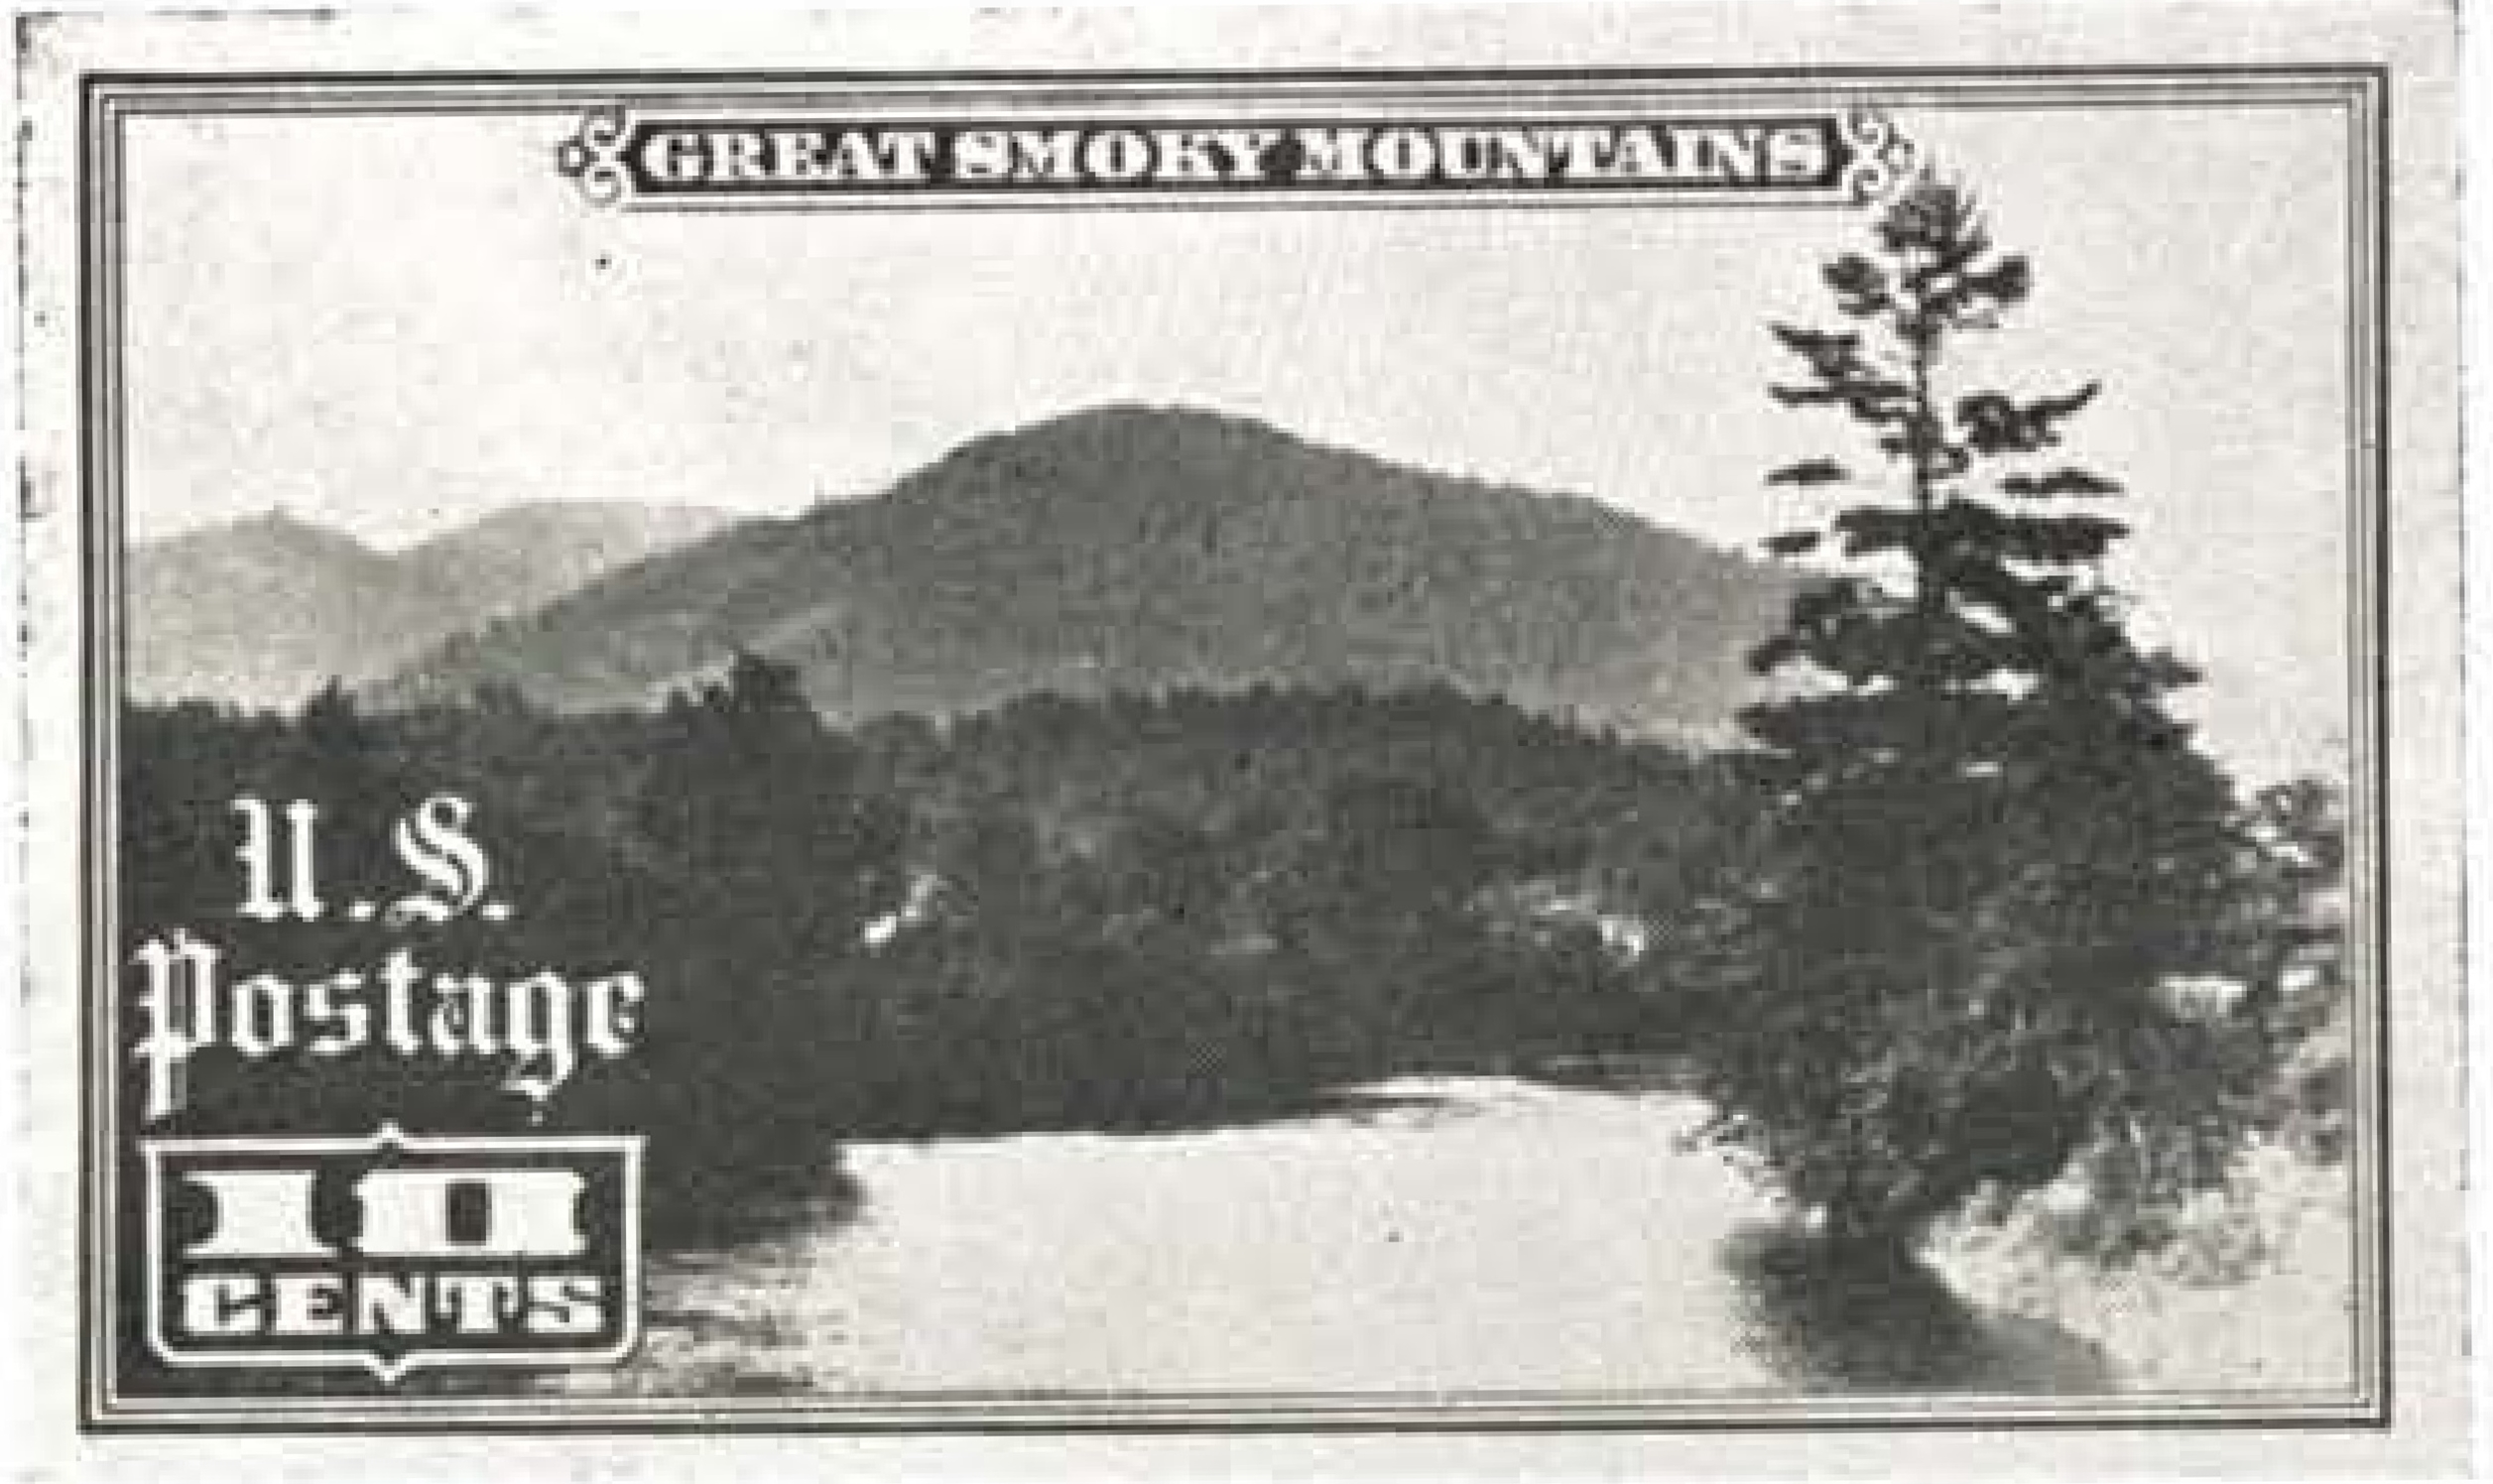 Original unused design for the 10-cent Great Smoky Mountains stamp by A. R. Meissner.